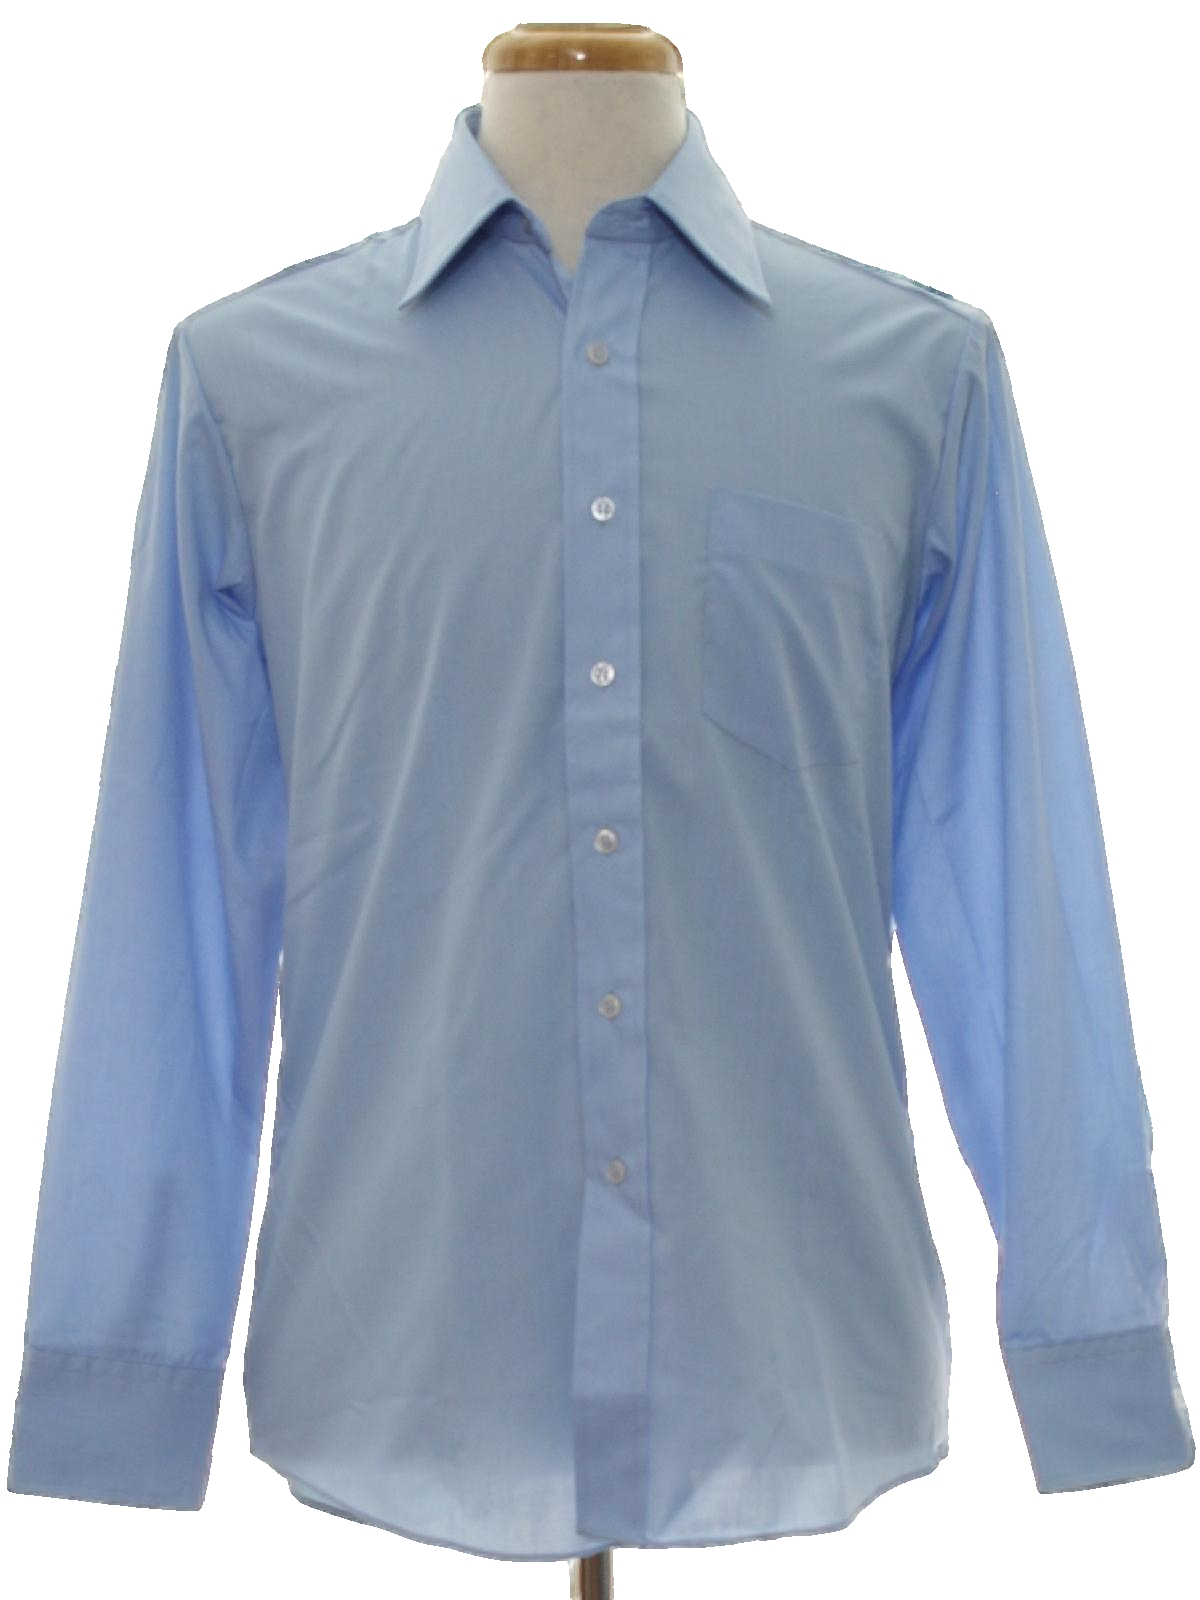 1960 39 S Retro Shirt Late 60s Fruit Of The Loom Mens